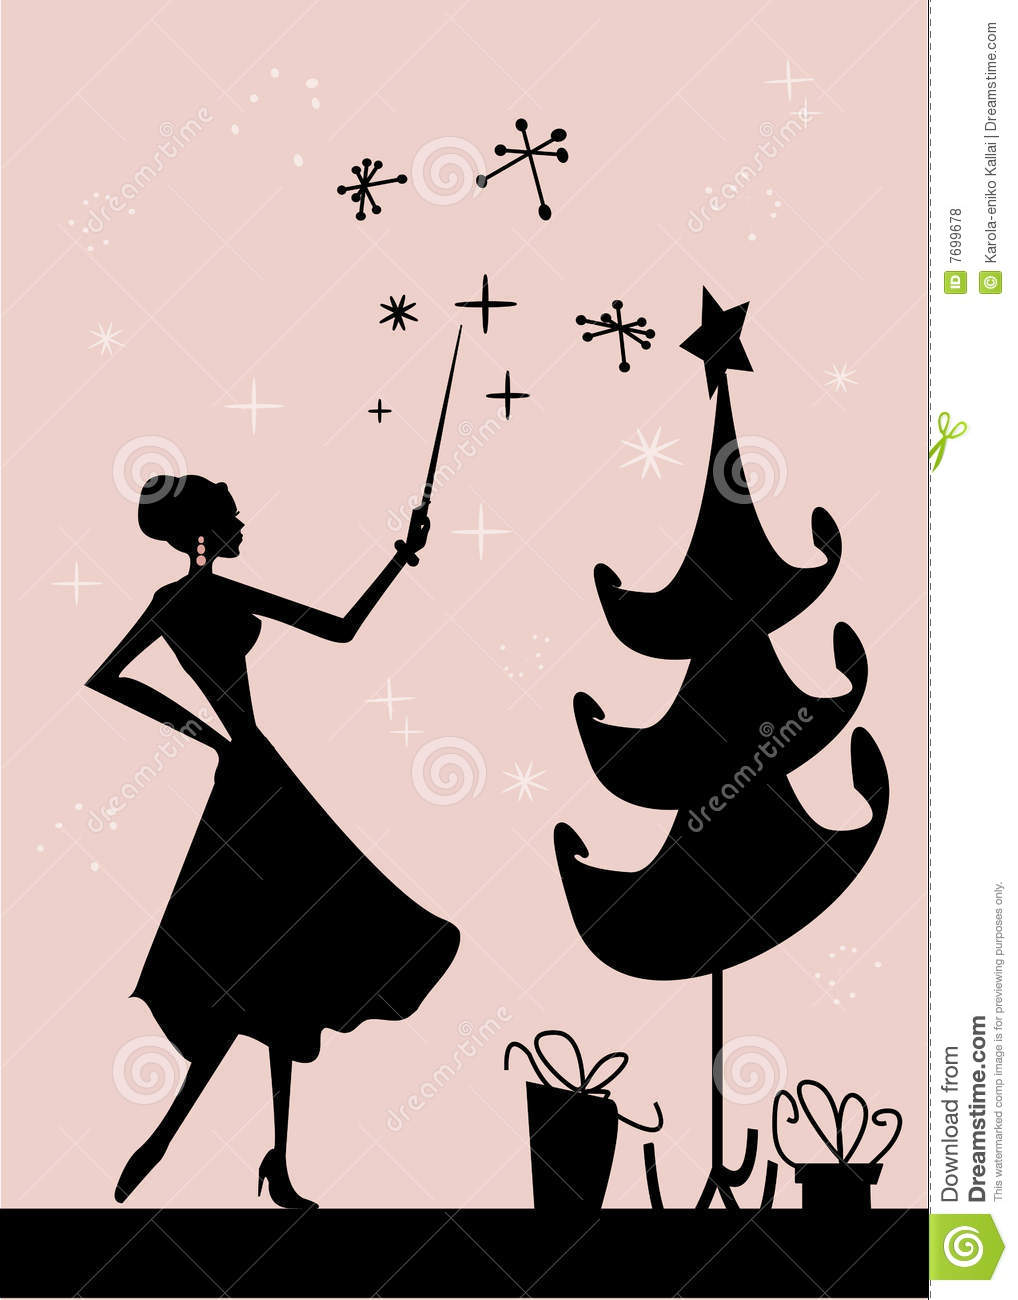 Christmas woman silhouette in front of a Christmas tree, illustration.